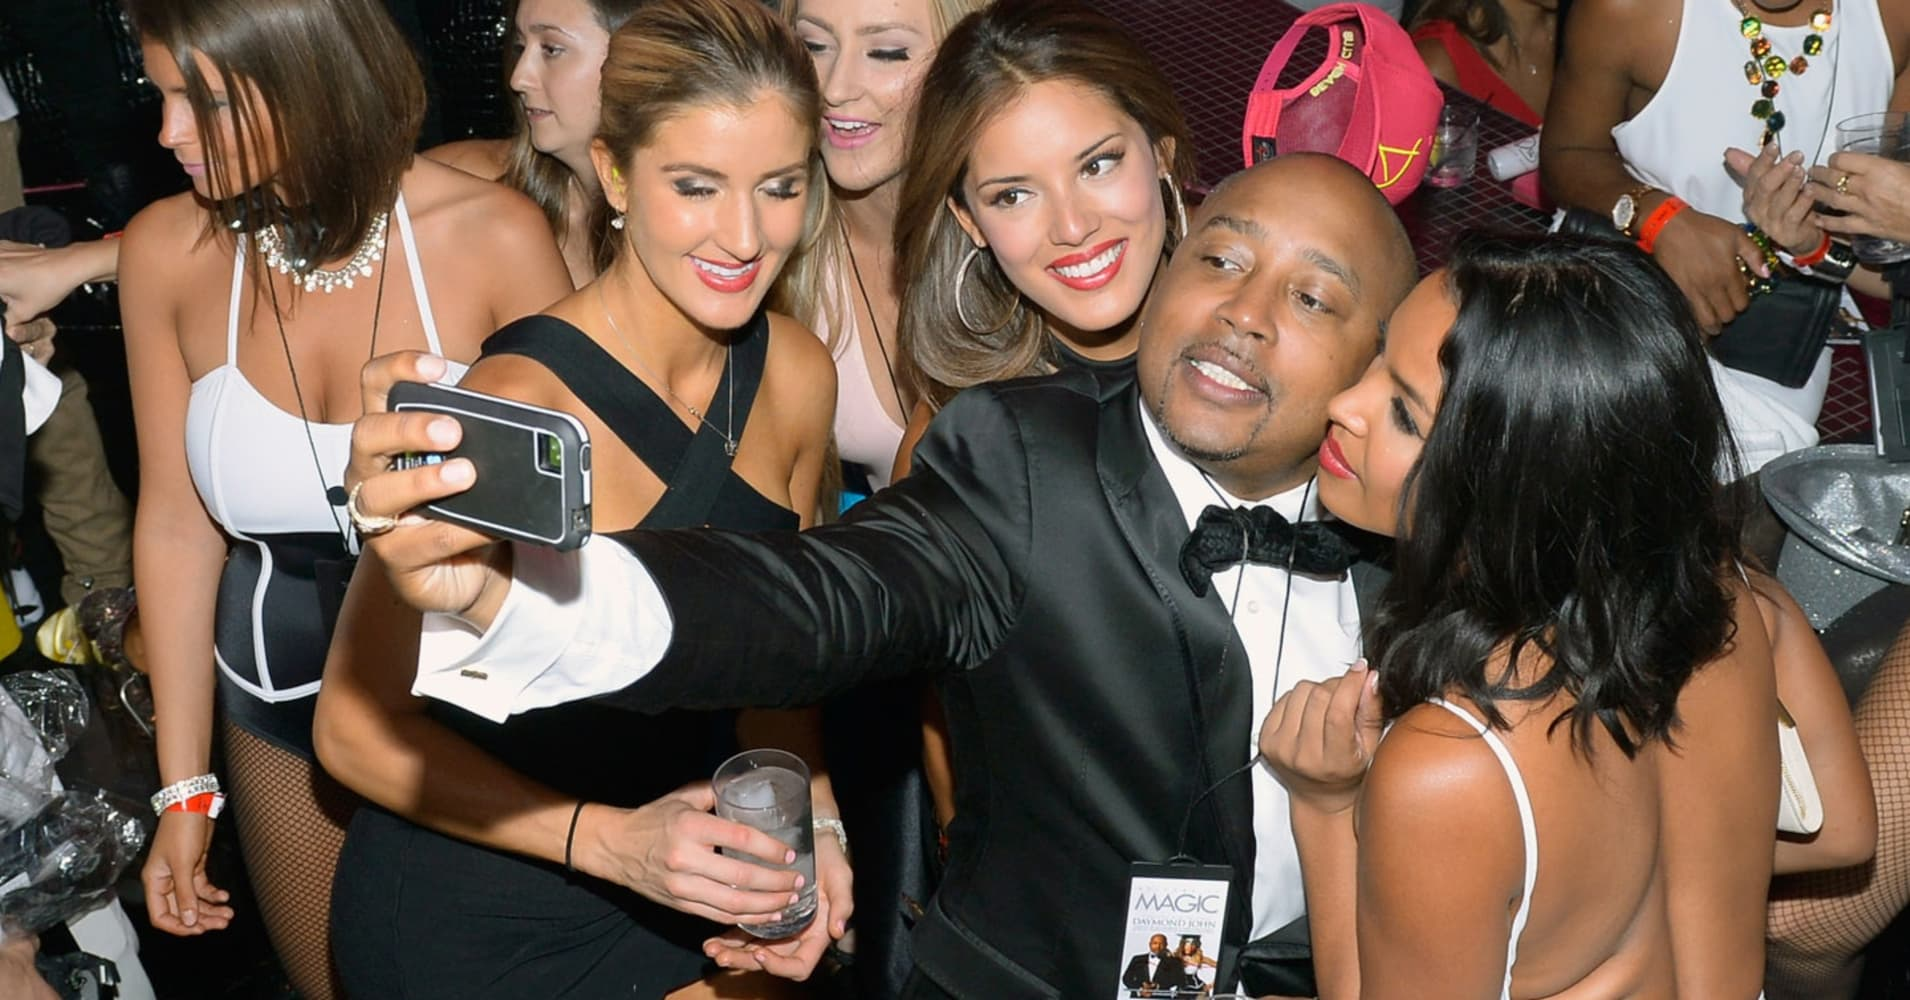 Television personality and Founder, President and CEO of FUBU Daymond John (C) takes a selfie with club goers.